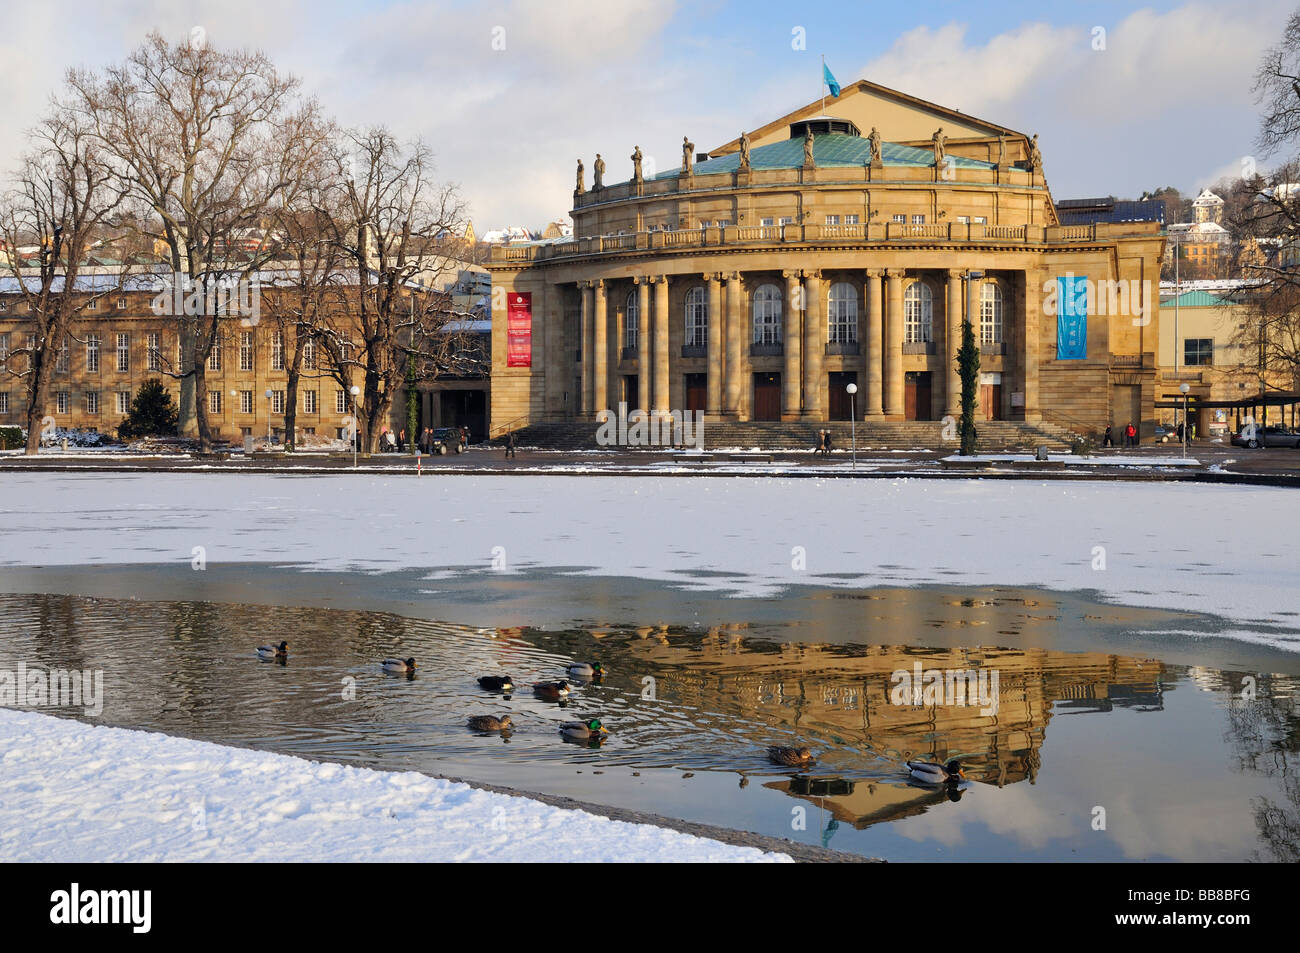 theater baden baden stockfotos theater baden baden bilder alamy. Black Bedroom Furniture Sets. Home Design Ideas